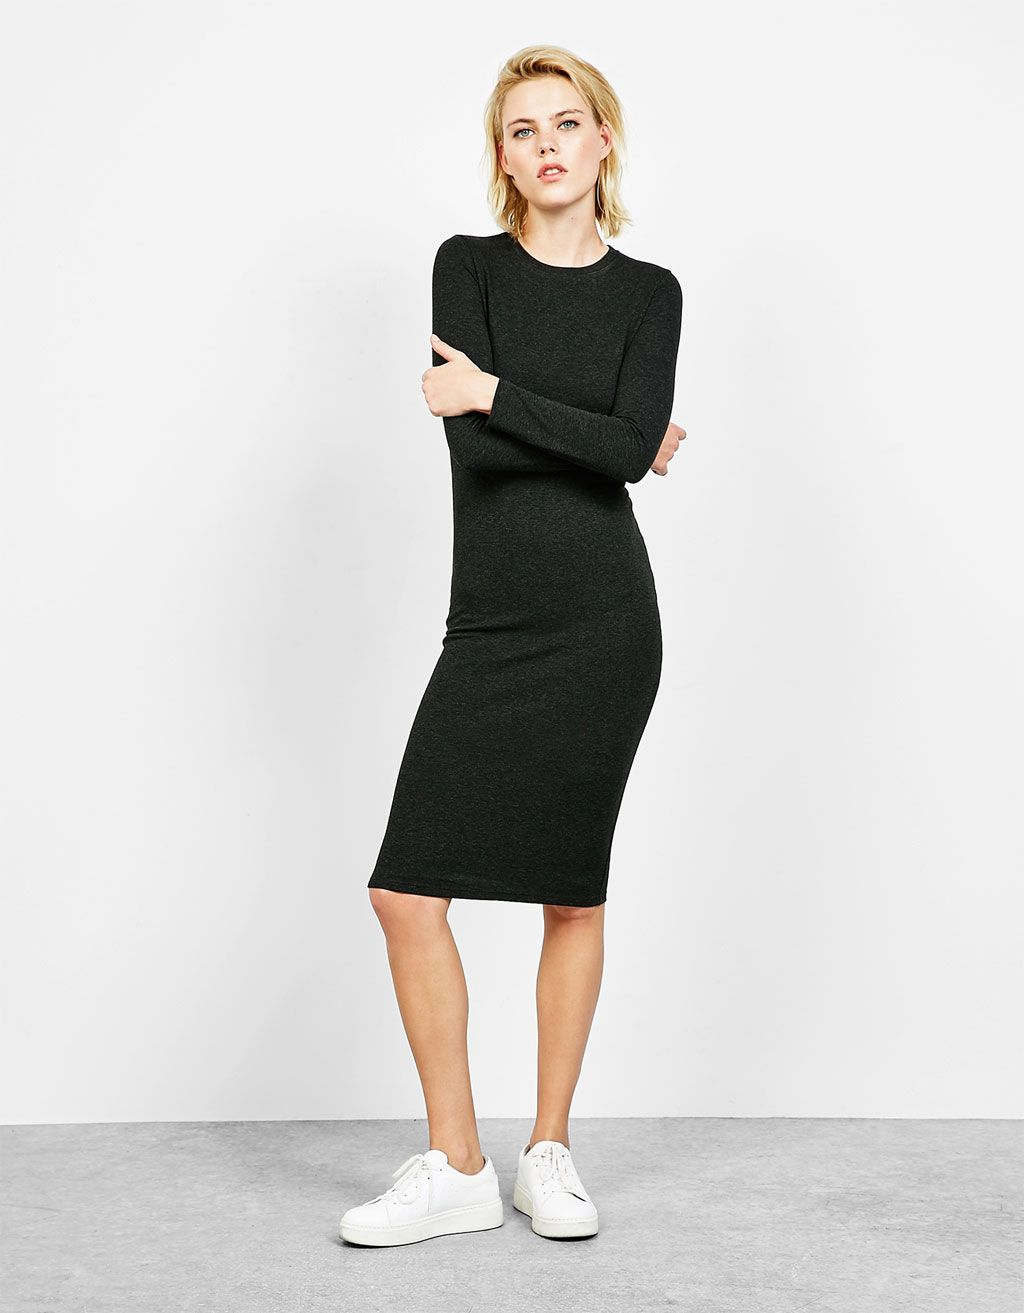 ee58a96b2b Long sleeve tight-fitting ponte di roma dress - Dresses - Bershka Georgia